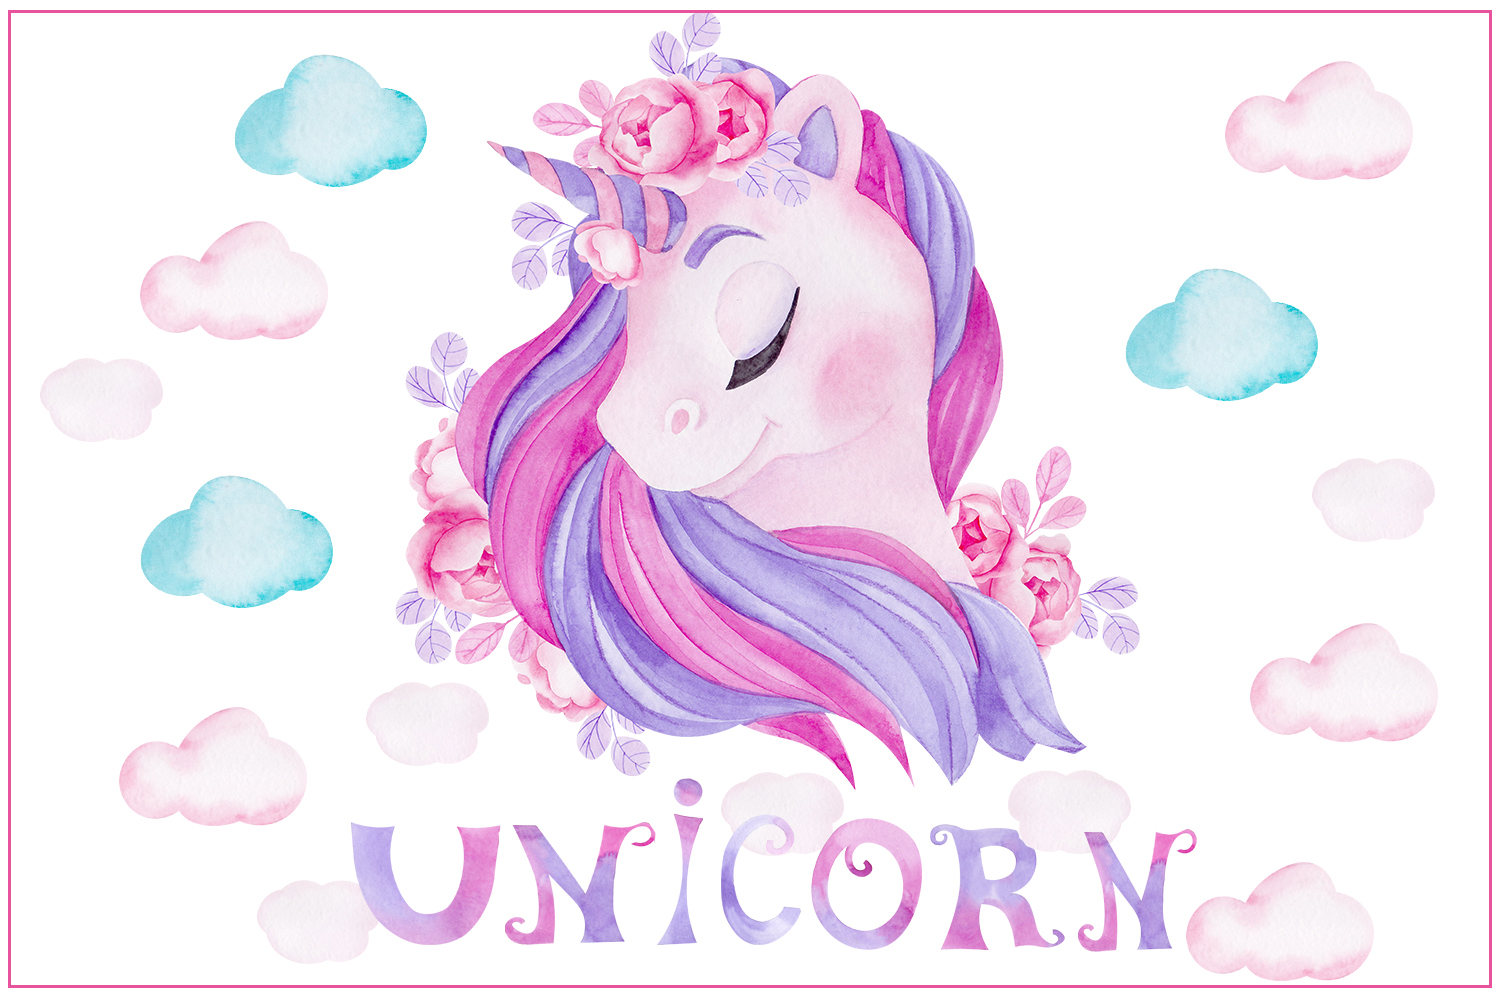 Cute unicorn. Illustrations and alphabet example image 1